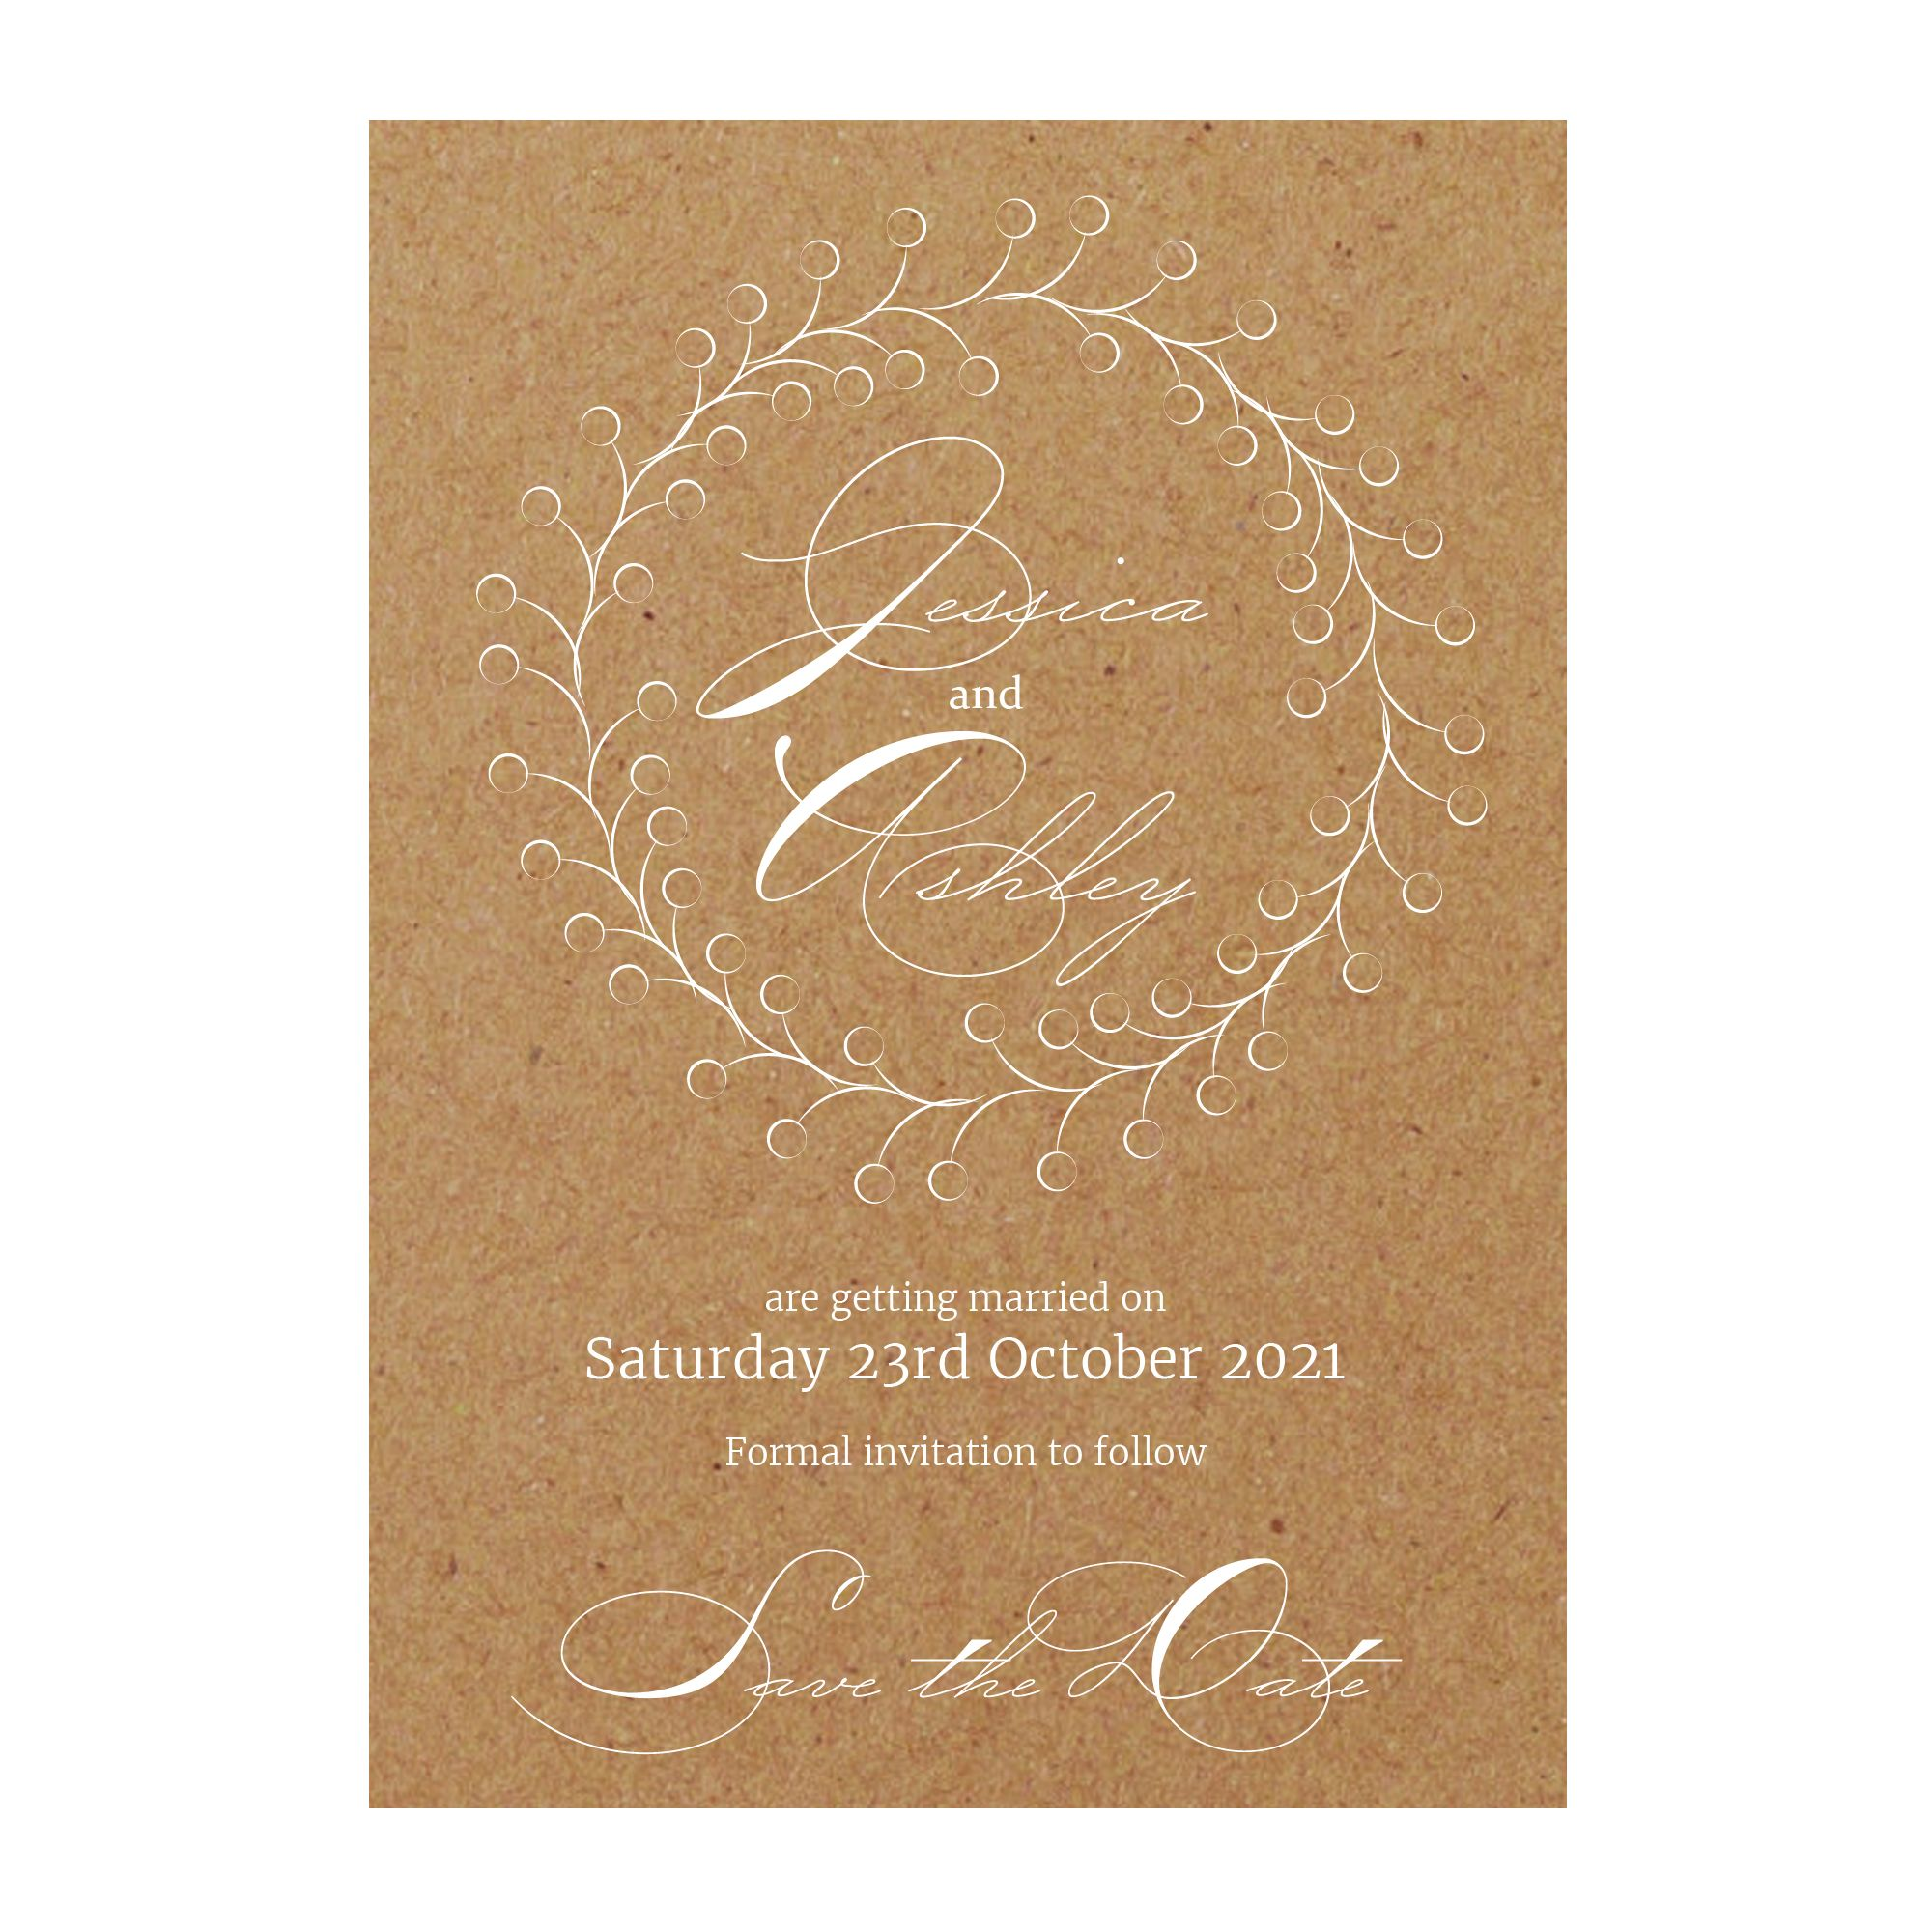 Recycled Brown Kraft with White Ink Rustic Floral Save the Date Cards